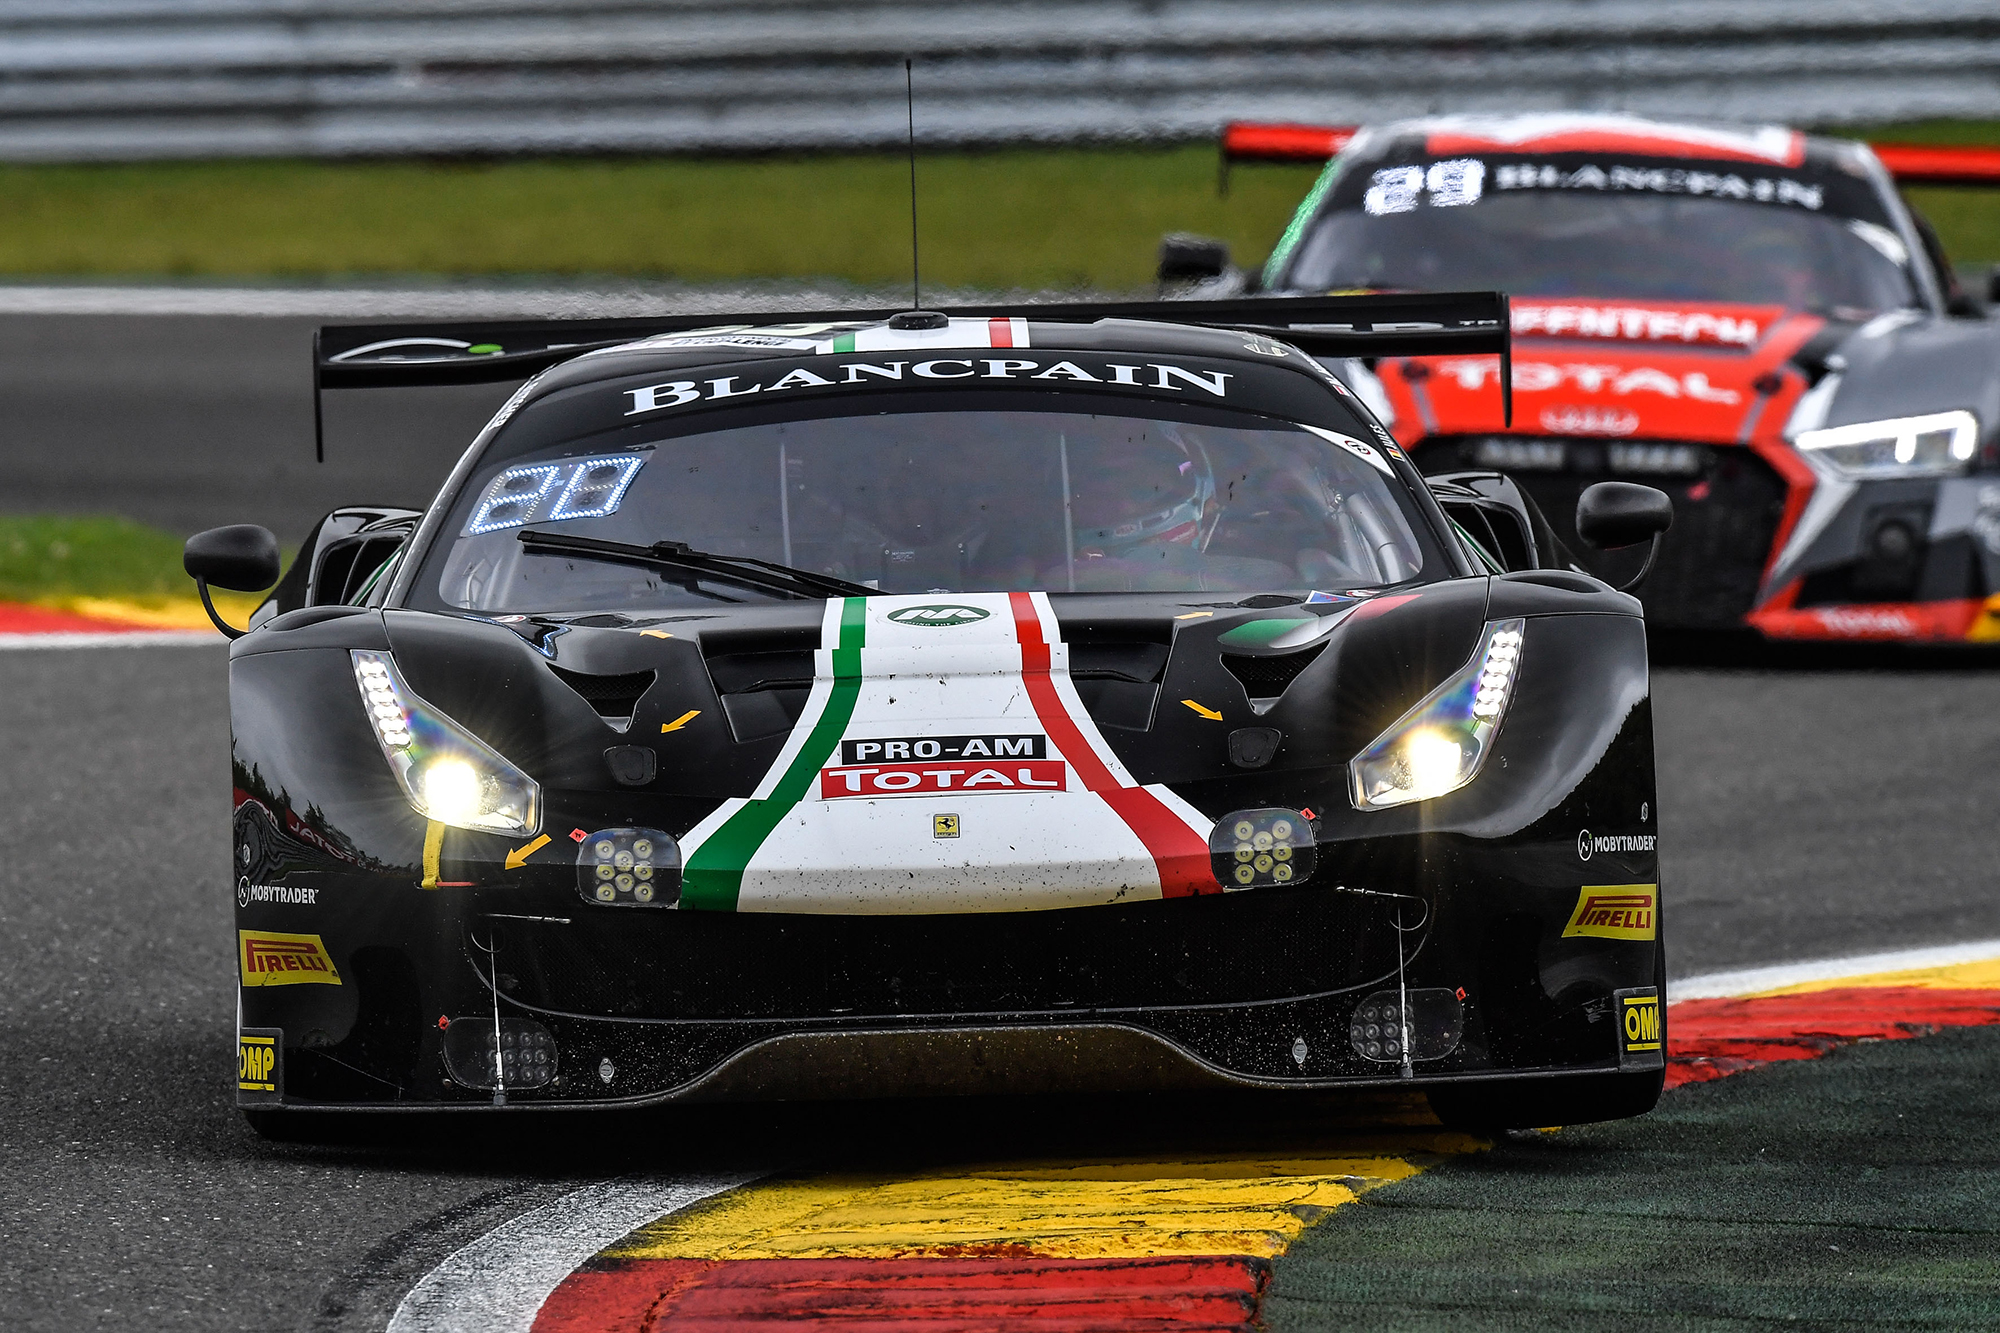 Ferrari 488 GT3, Spirit of Racing | 24 Ore di Spa